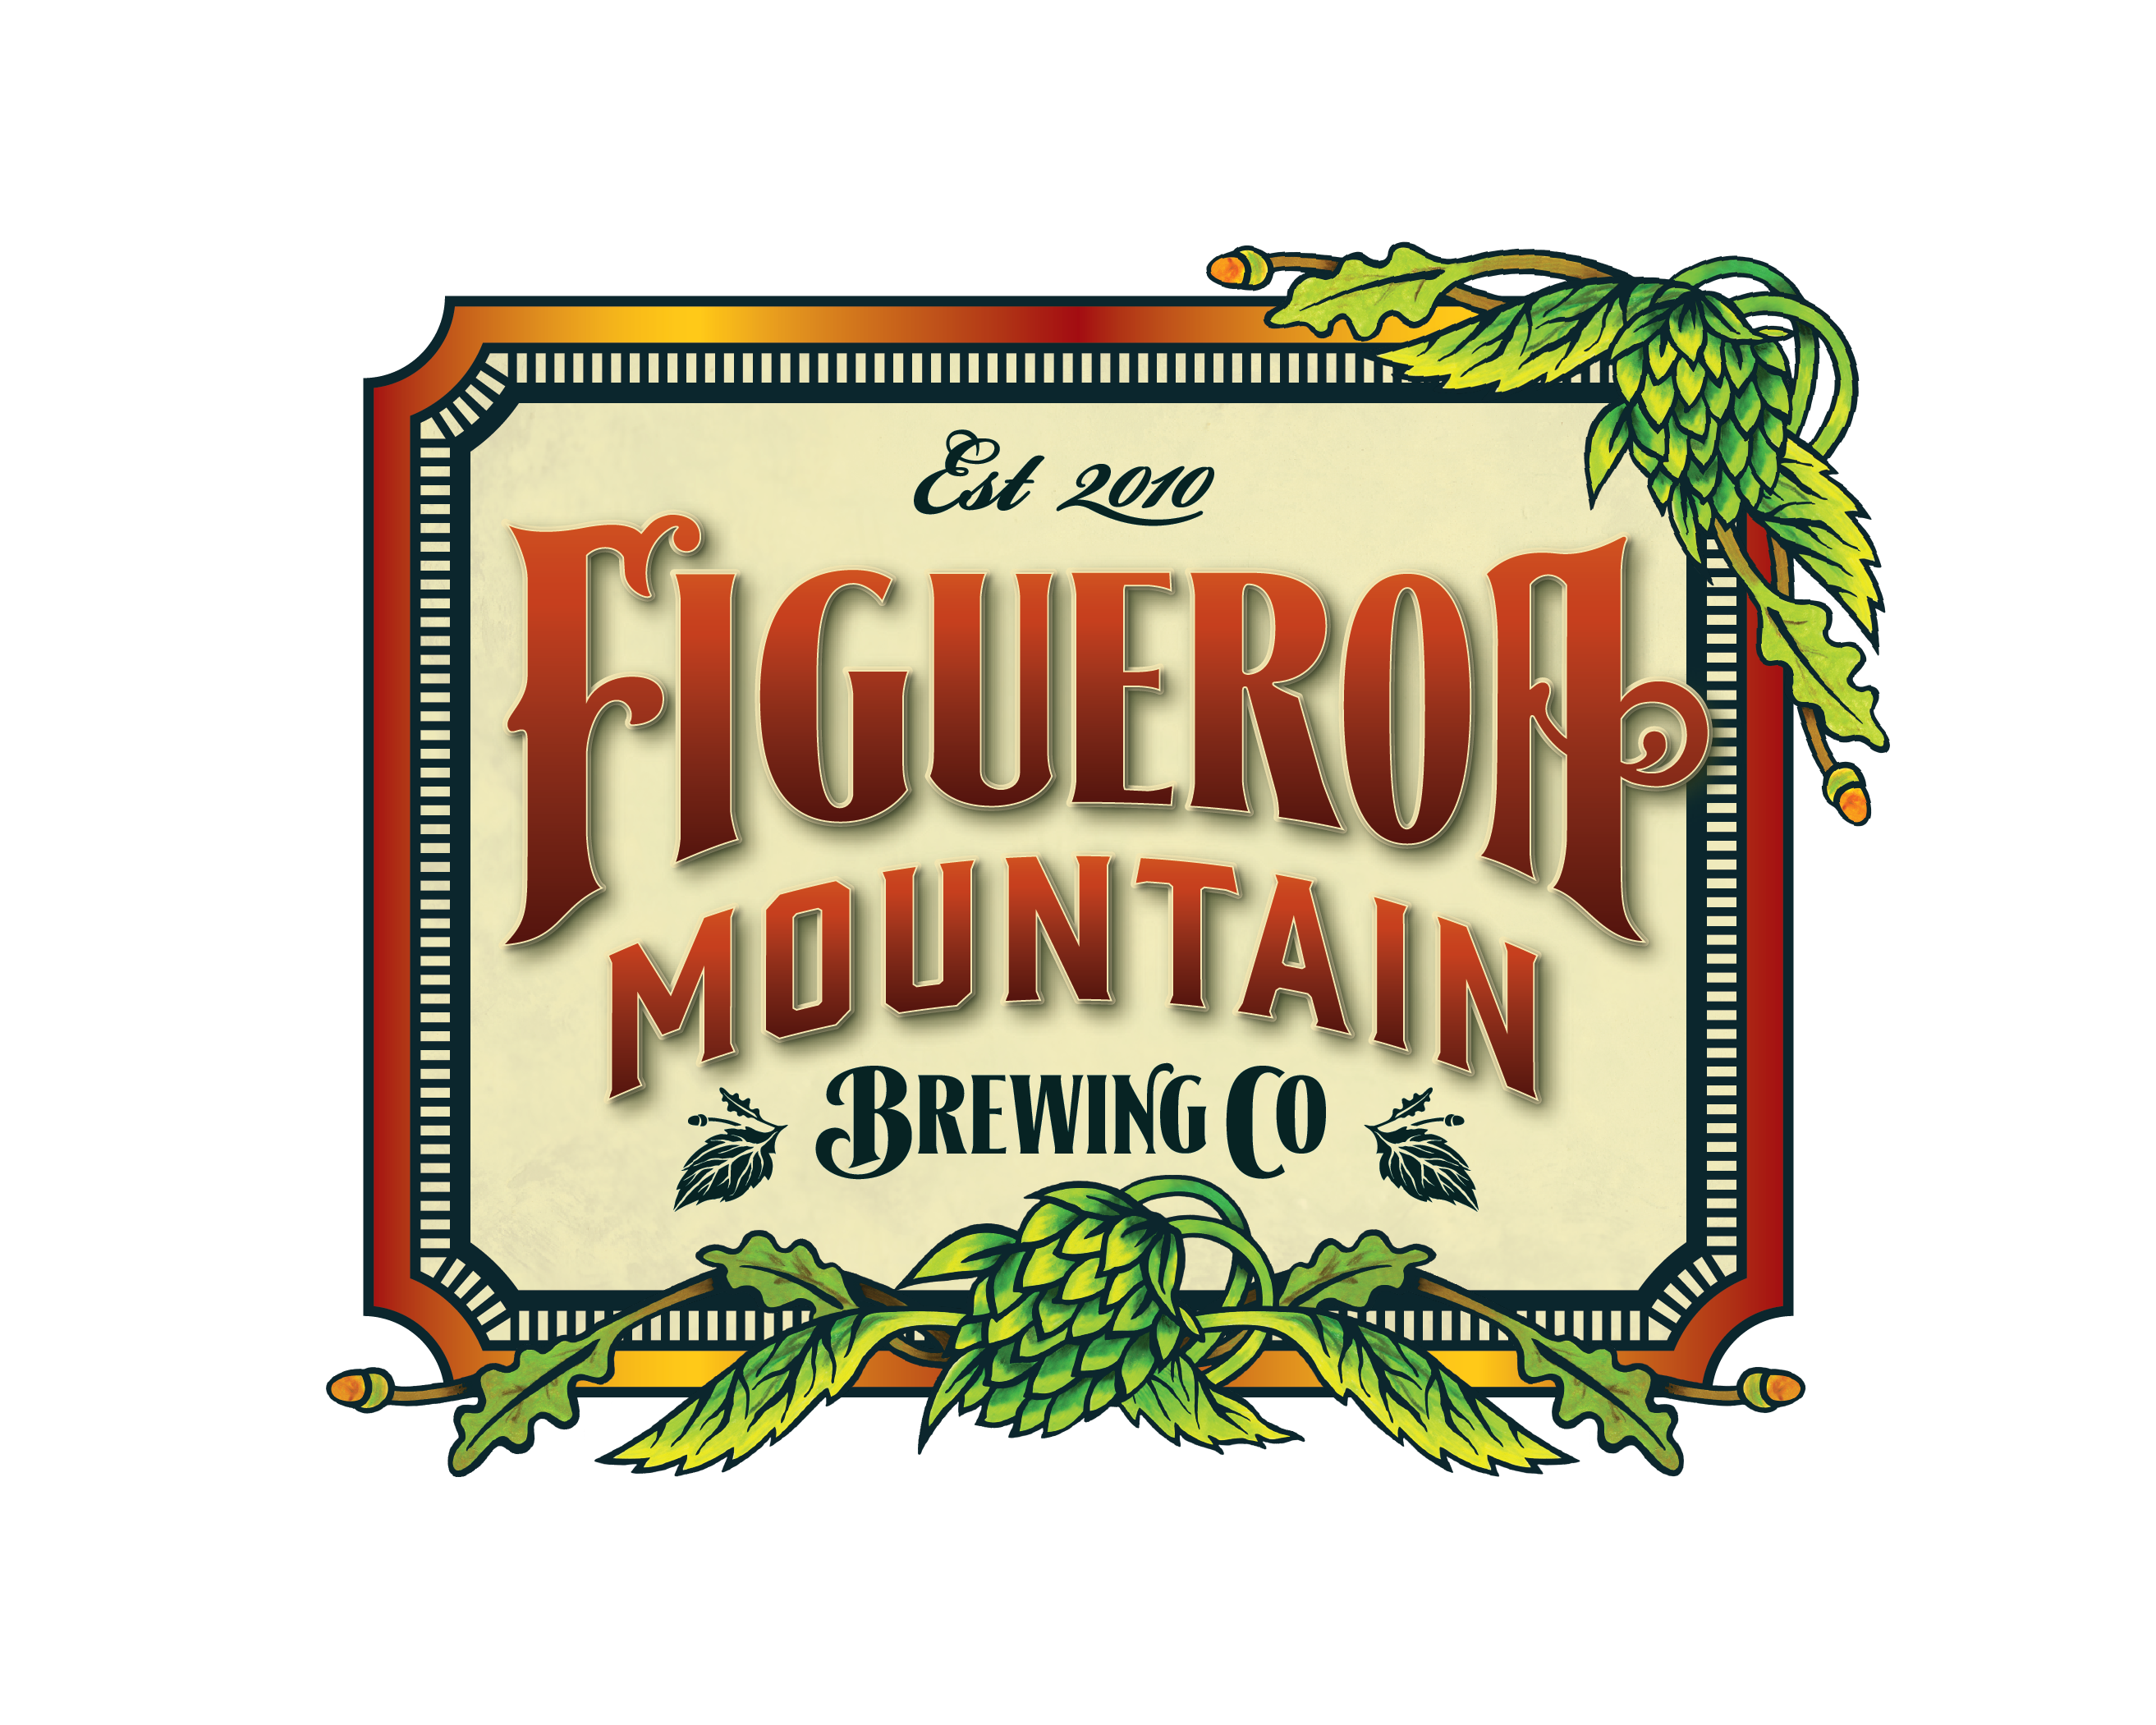 Figueroa Mountain Brewing Company